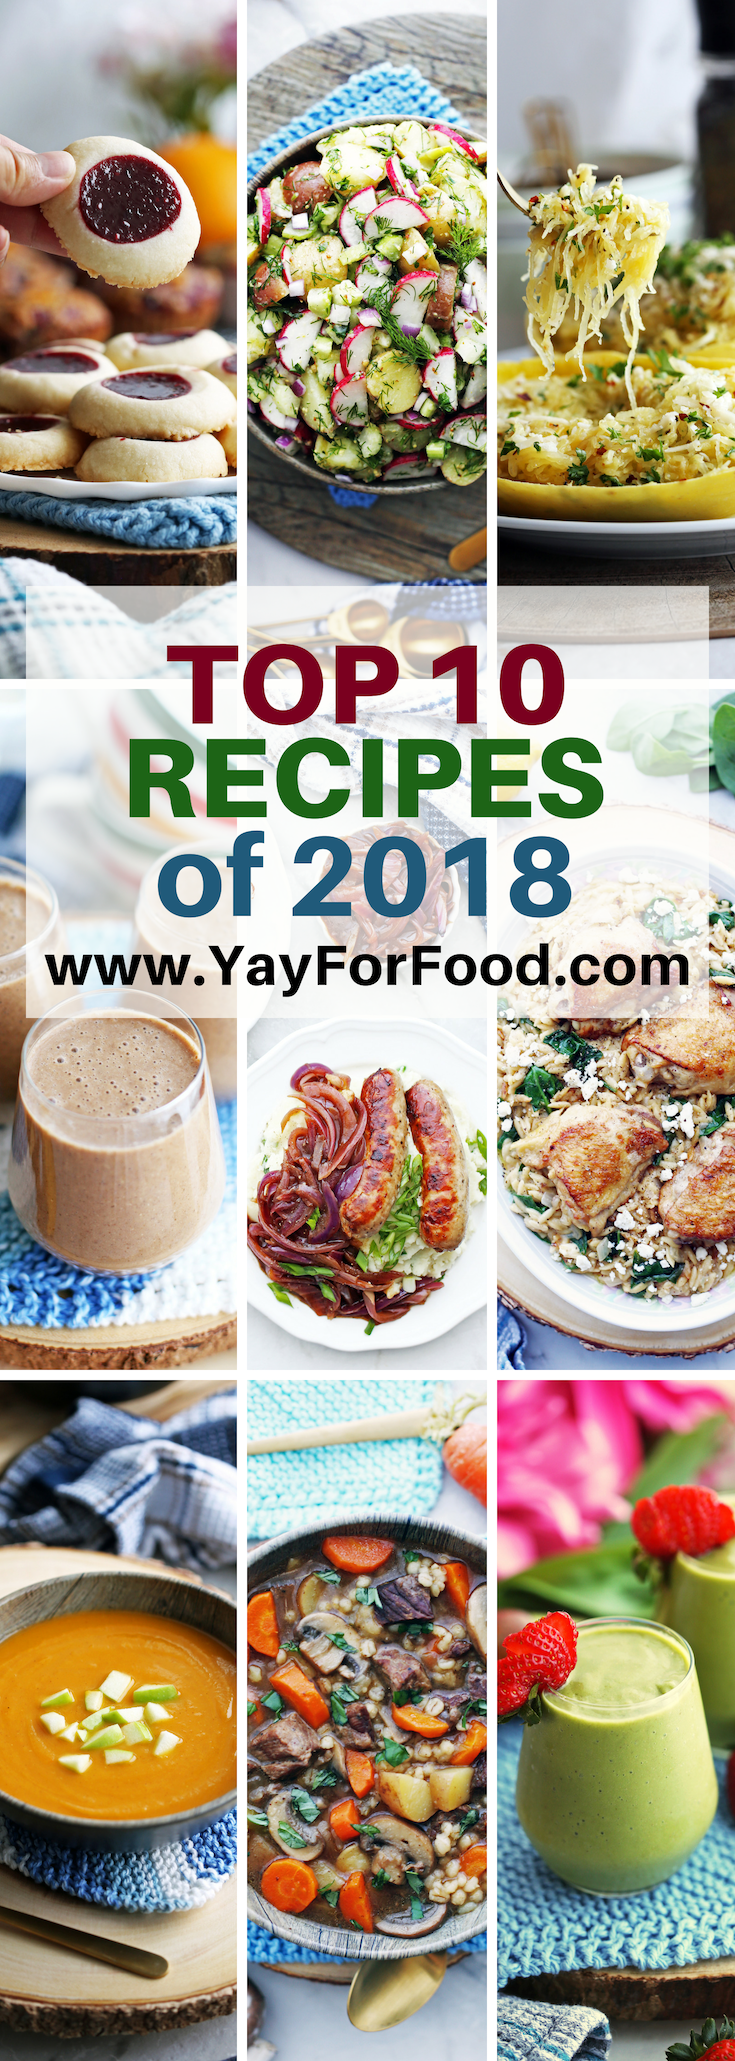 Yay! For Food's Top Ten New Recipes of 2018 including Instant Pot soups and main dishes, potato salad, smoothies, and a tasty classic thumbprint cookie! #yayforfood #topten #recipes #instantpot #easyrecipes